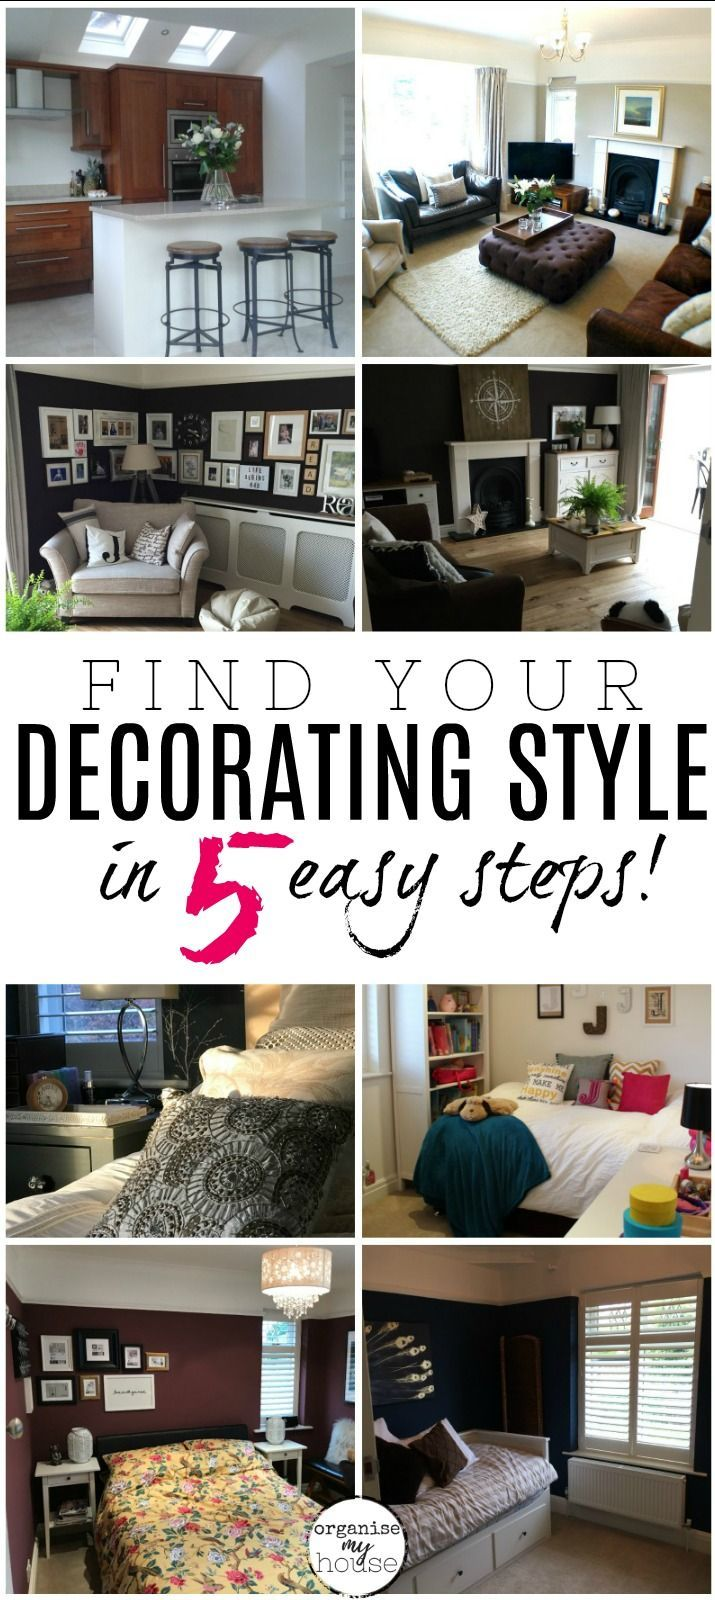 FOLLOW THESE 5 STEPS IN YOUR HOME NOW! | Decor styles, Decor ...